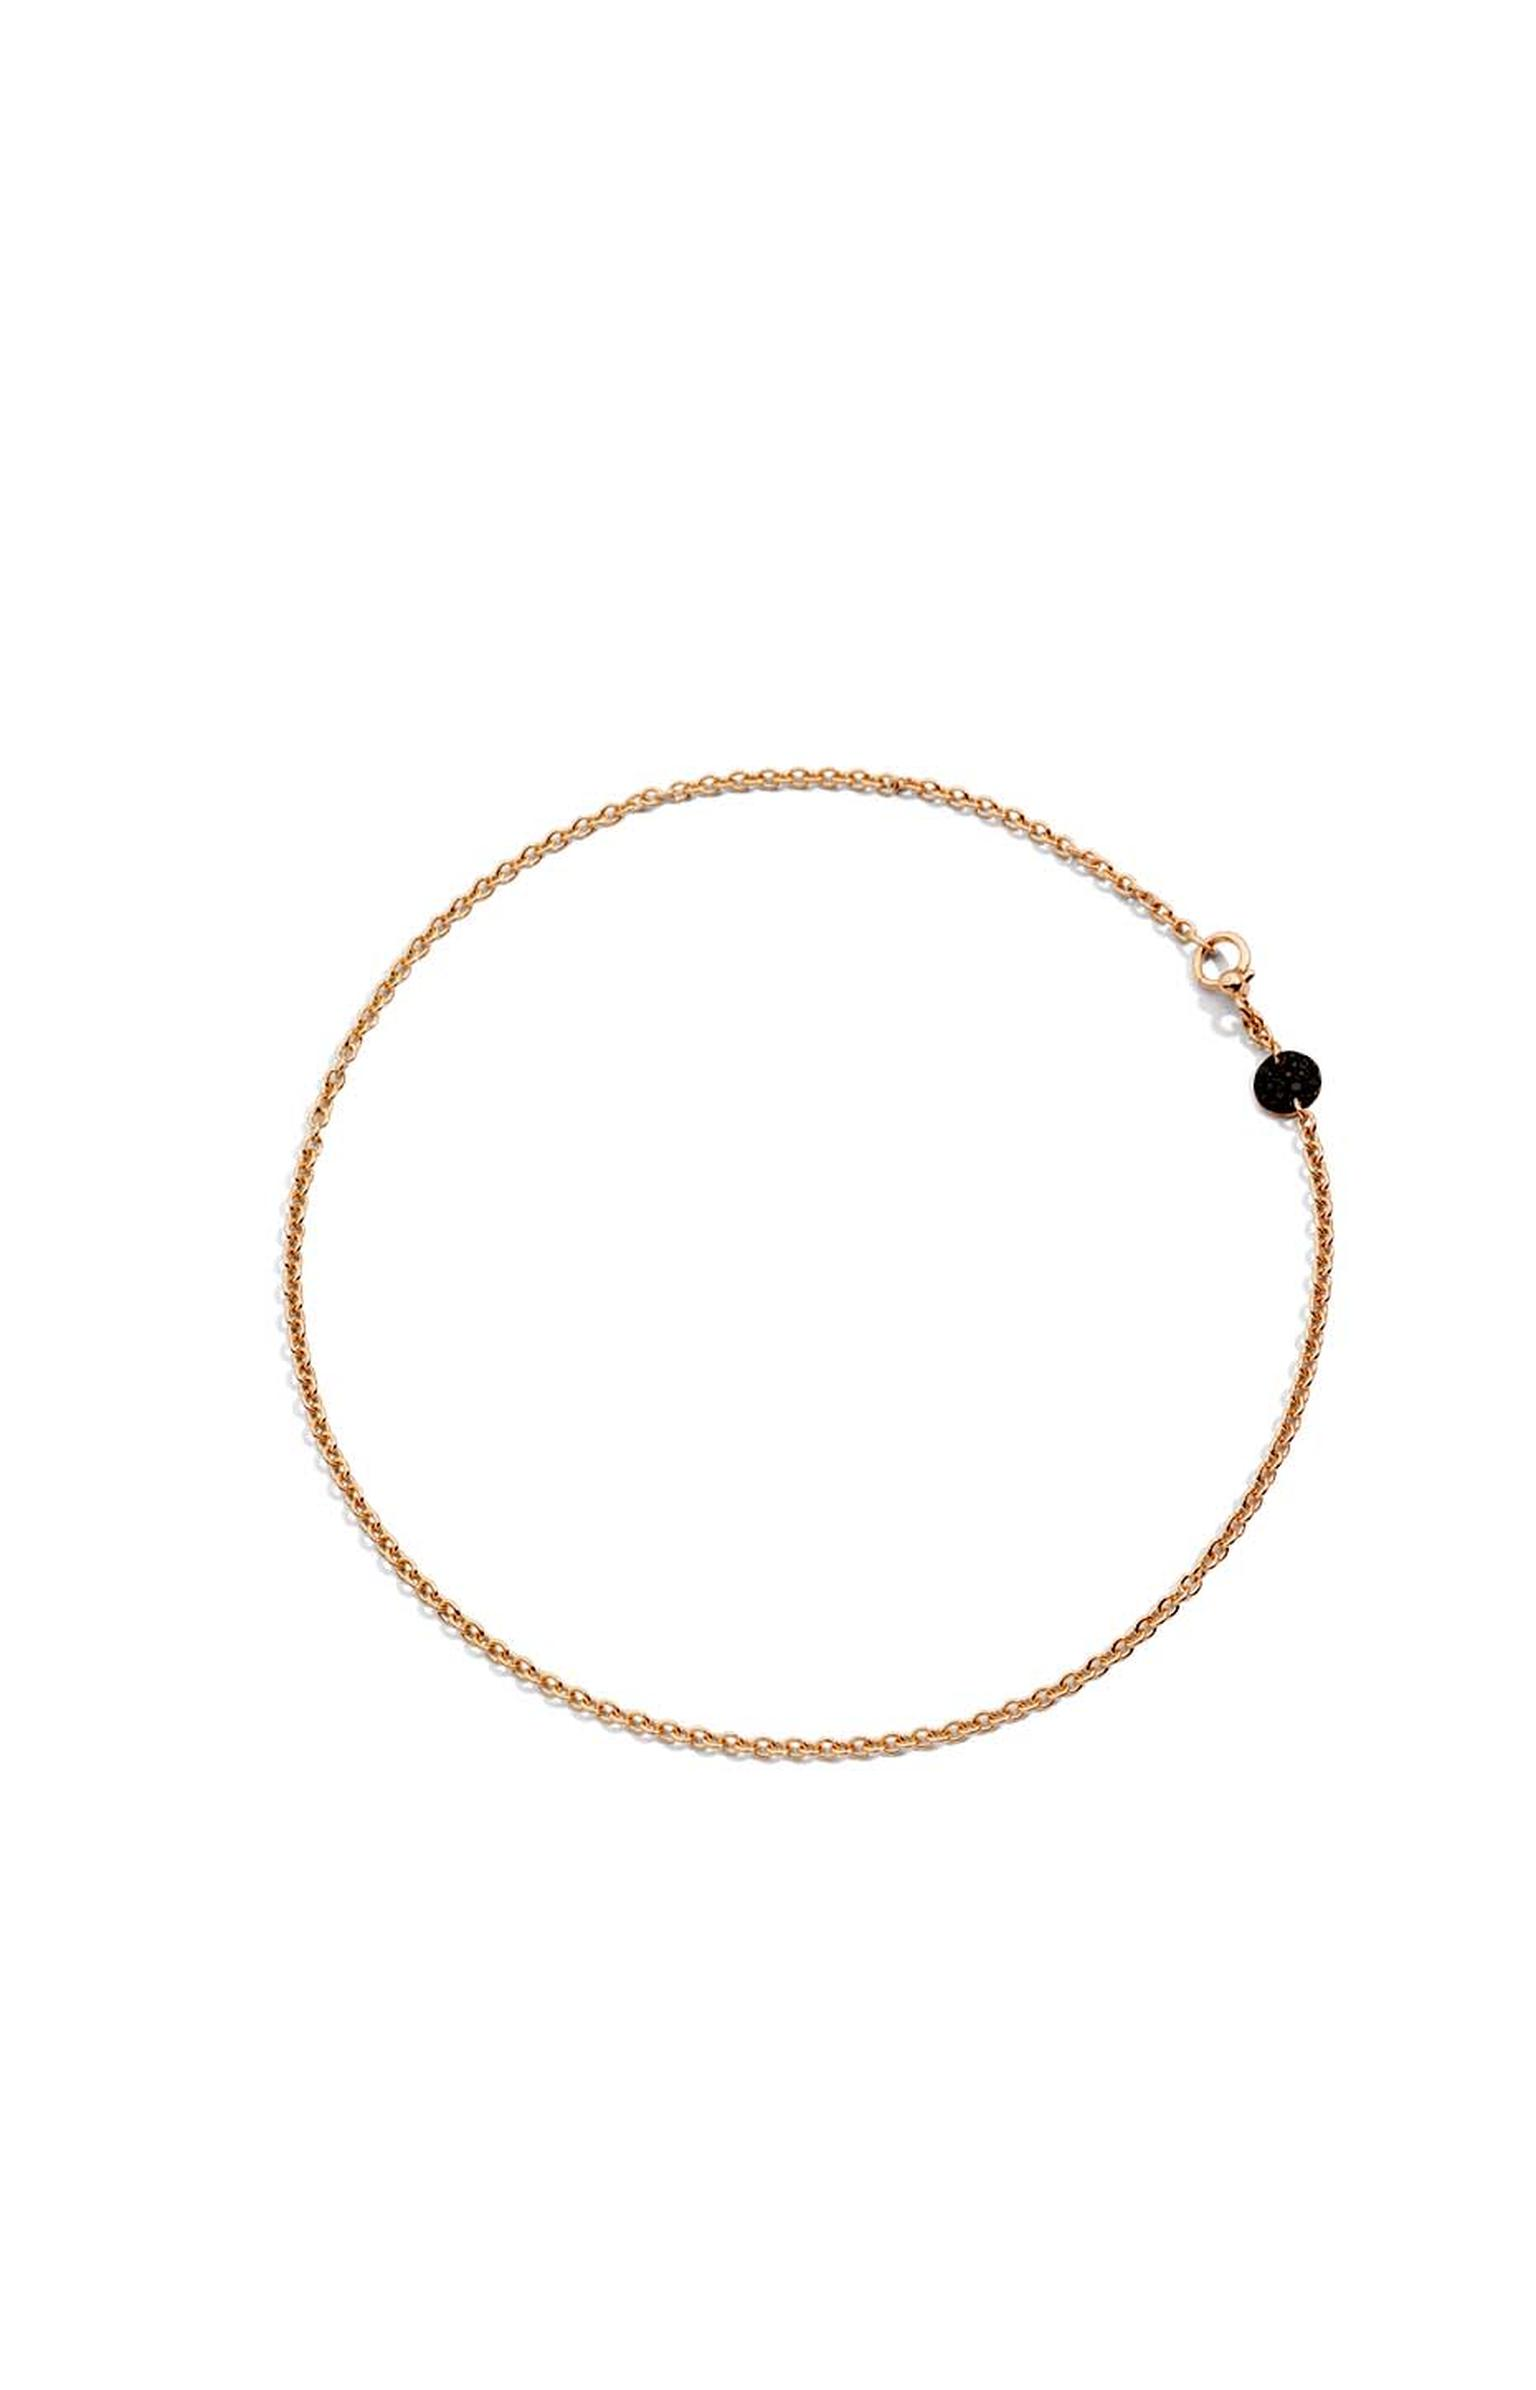 Pomellato Sabbia choker necklace featuring a rose gold disc with black diamonds.